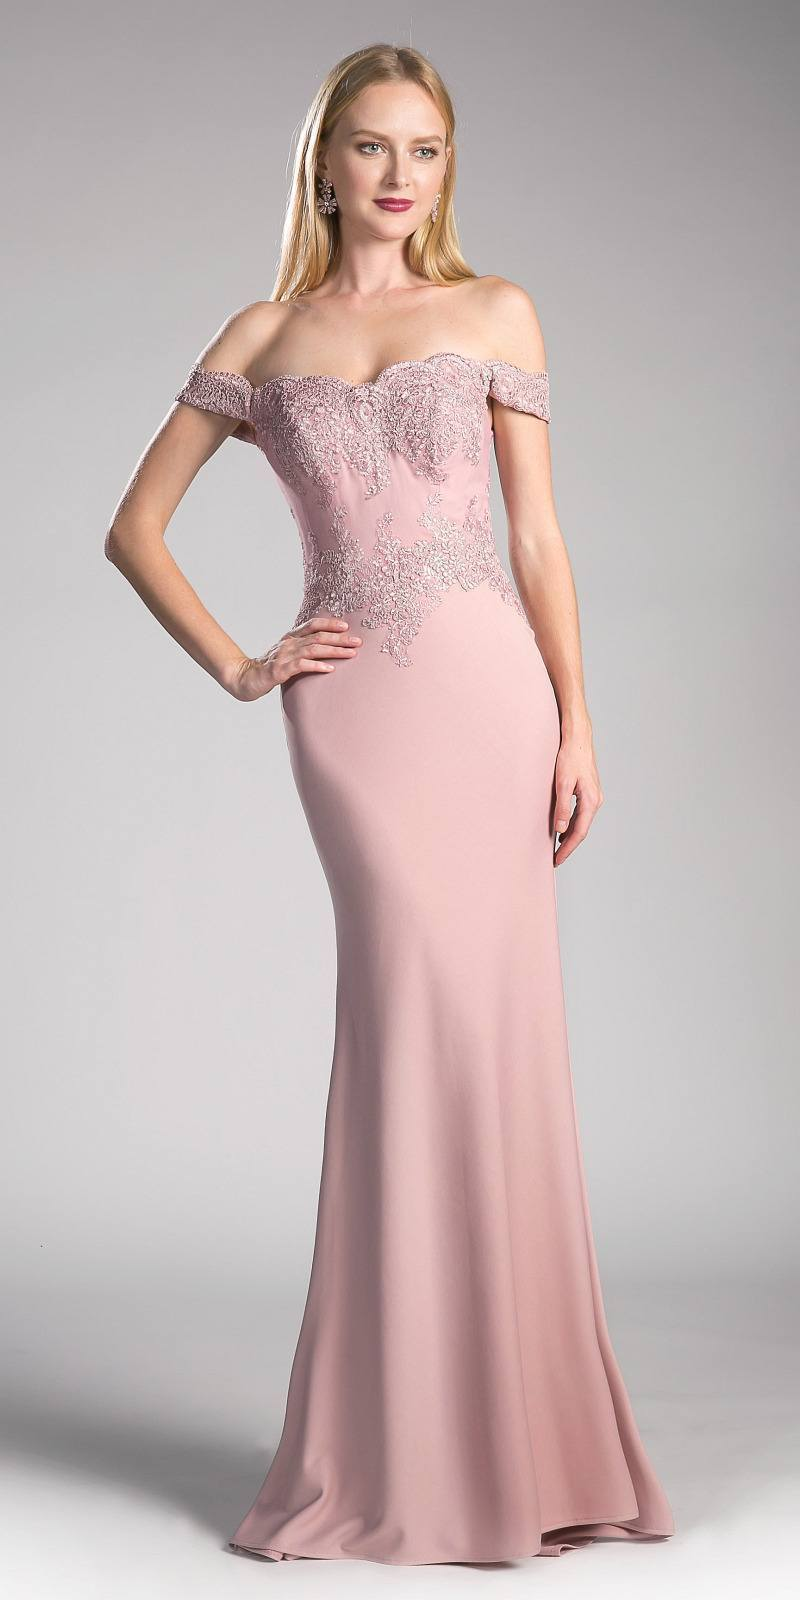 Cinderella Divine - CF158 Off Shoulder Stretch Crepe Satin Gown Special Occasion Dress XS / Dusty Rose